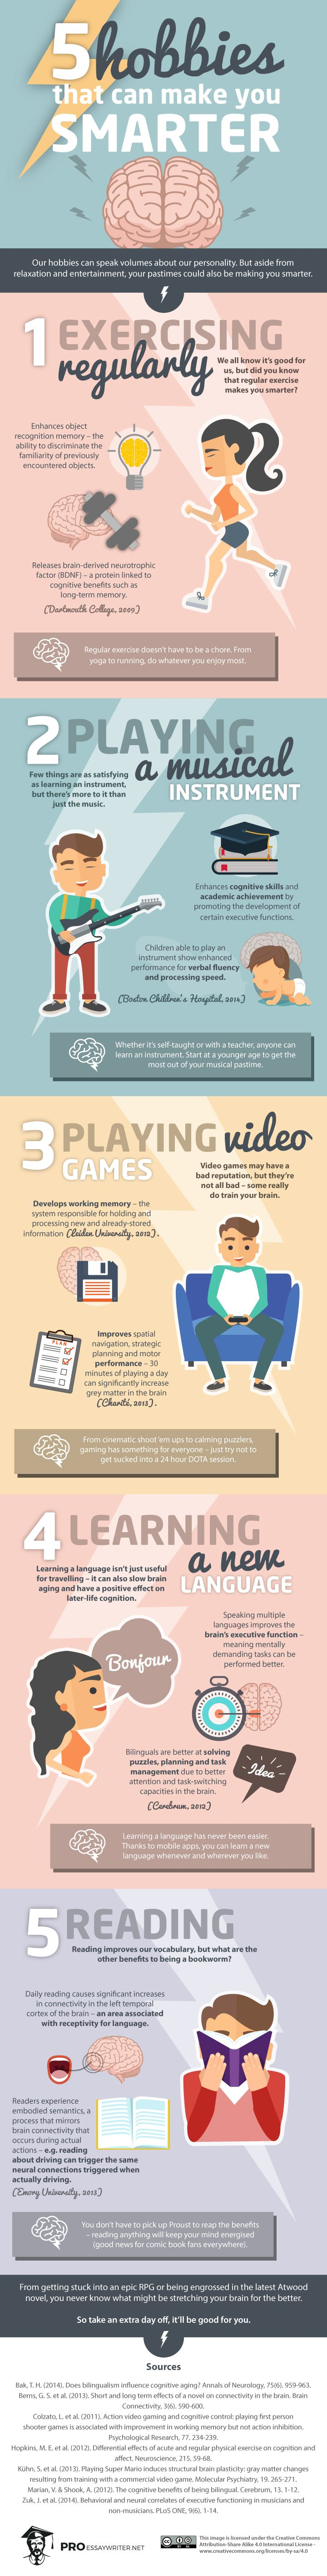 5 Hobbies that Can Make you Smarter - mind, spirit & body health & wellbeing